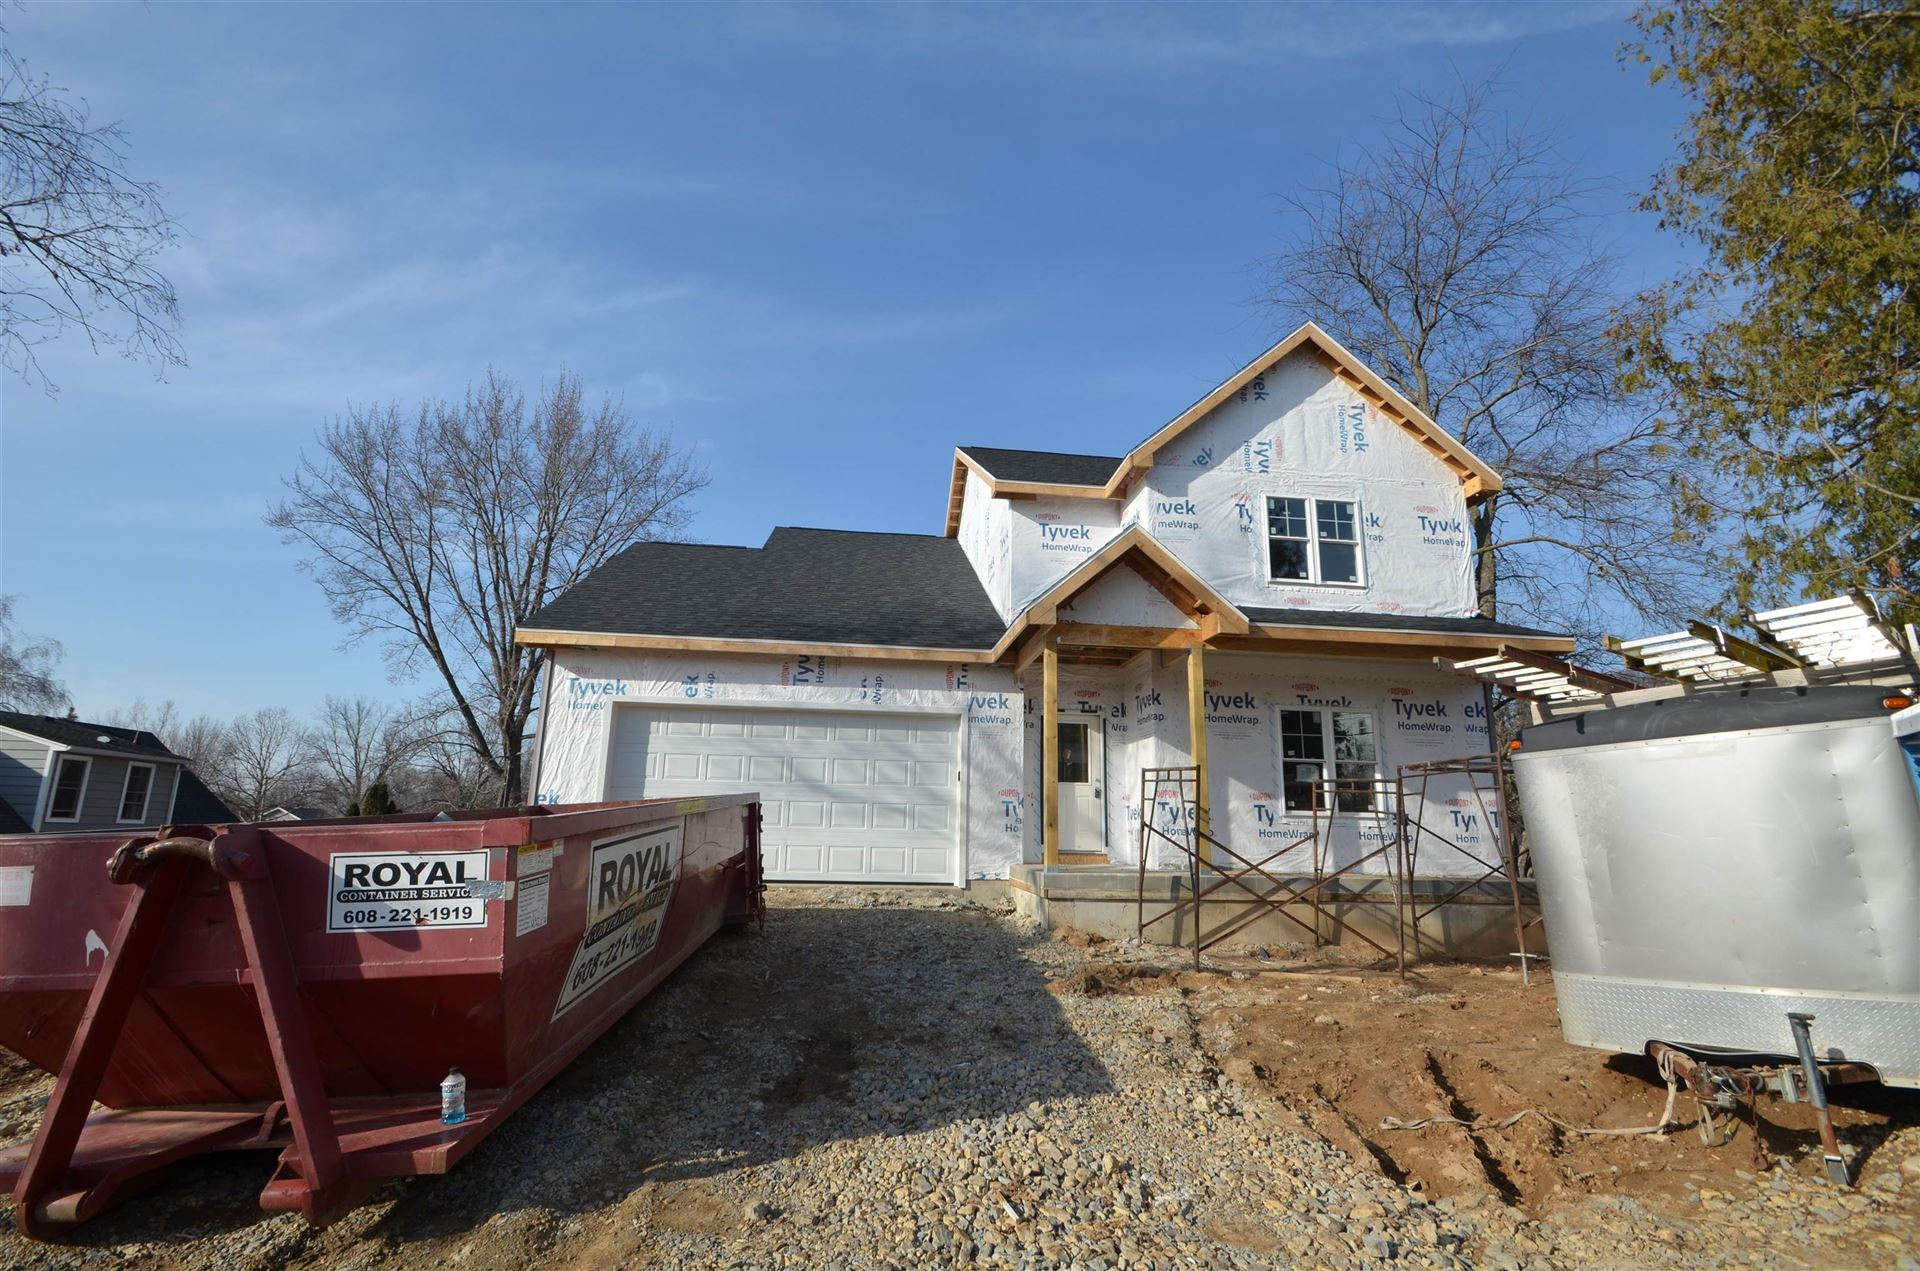 206 Knutson Dr, Madison, WI 53704 - #: 1884052